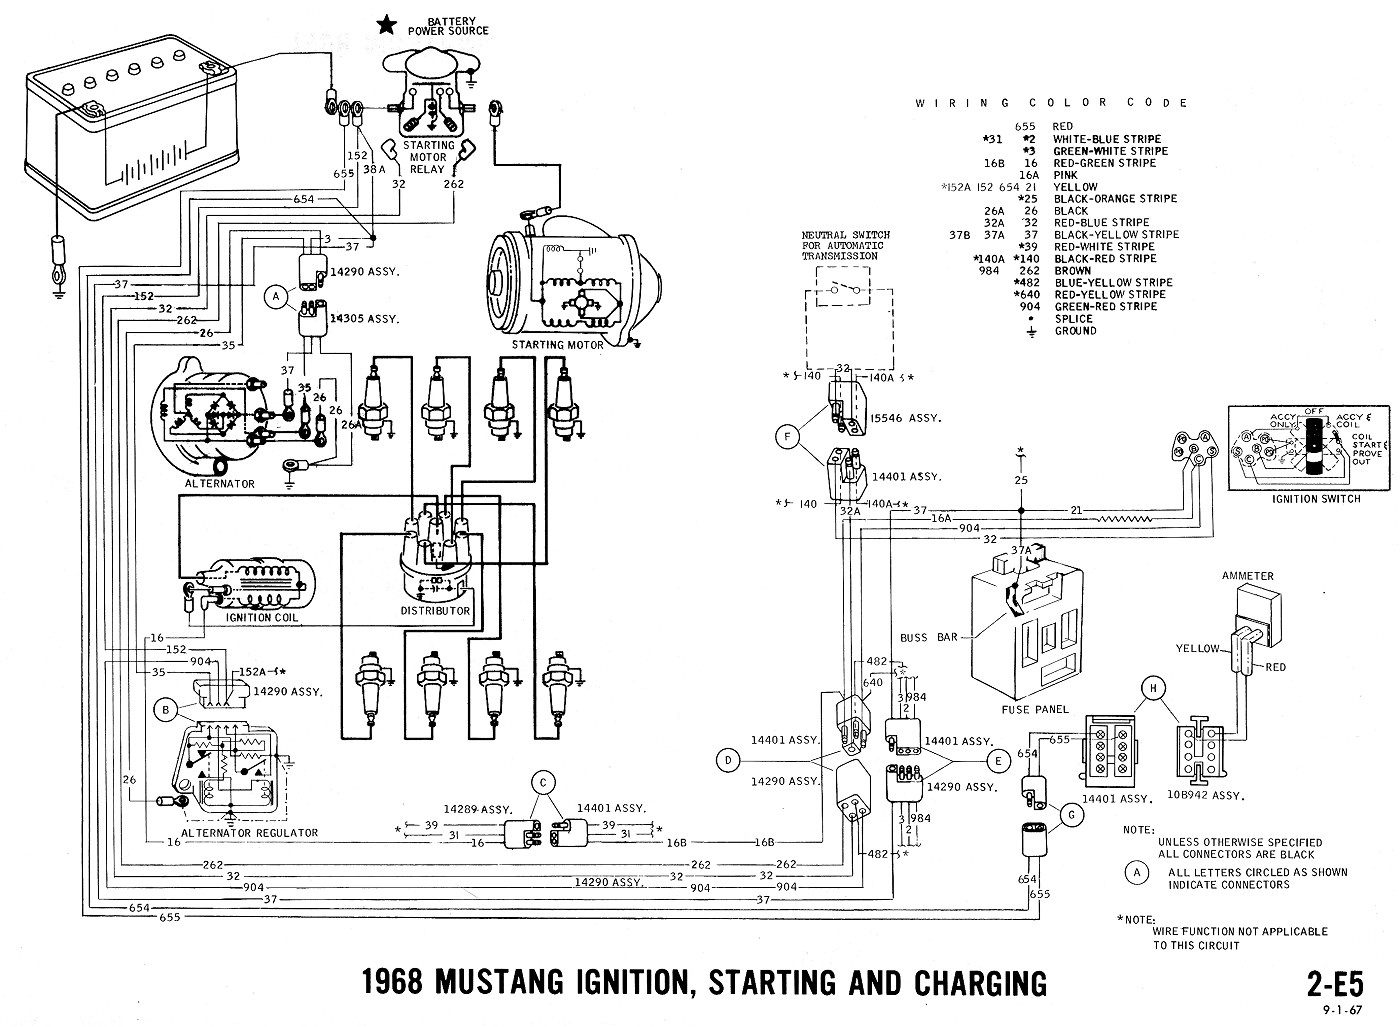 1982 Ford Mustang Wiring Diagram Not Lossing Jeep Cj7 Alternator Engine Third Level Rh 15 6 16 Jacobwinterstein Com Bronco